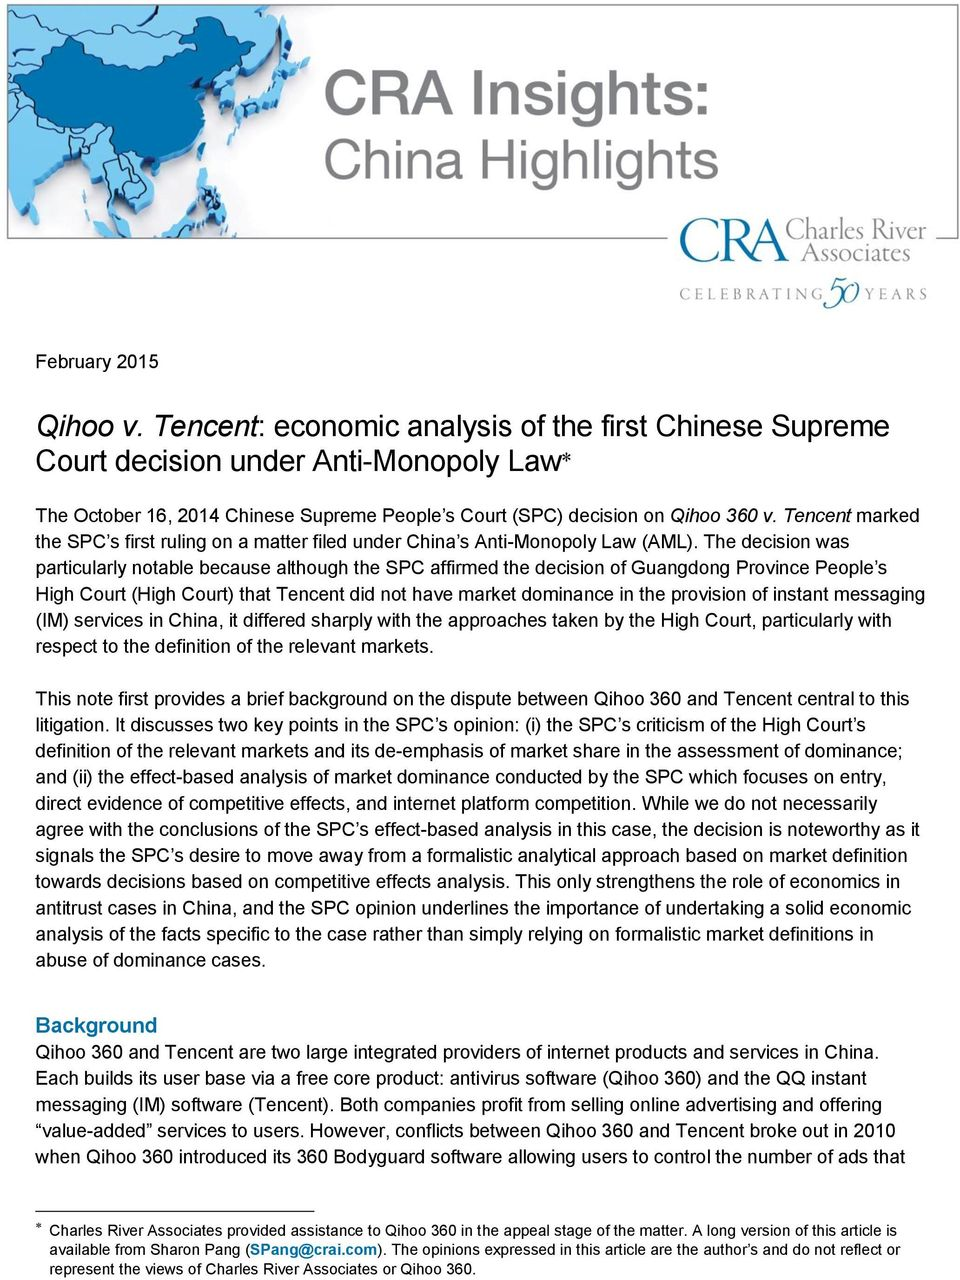 The decision was particularly notable because although the SPC affirmed the decision of Guangdong Province People s High Court (High Court) that Tencent did not have market dominance in the provision